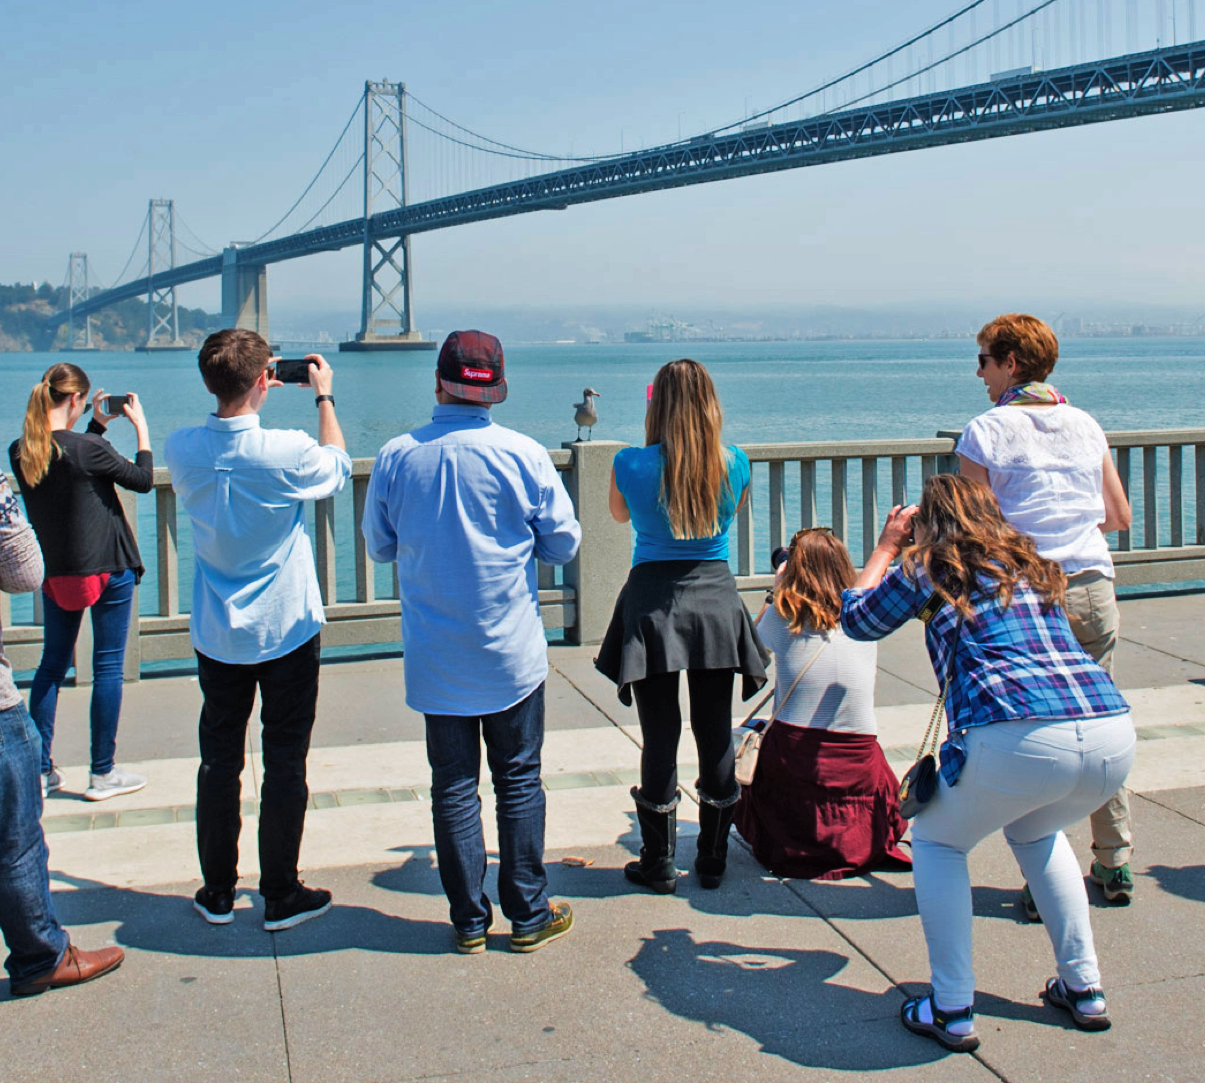 Adam Jacobs Group Photography Workshops for corporate and tech companies on the Embarcadero in San Francisco.